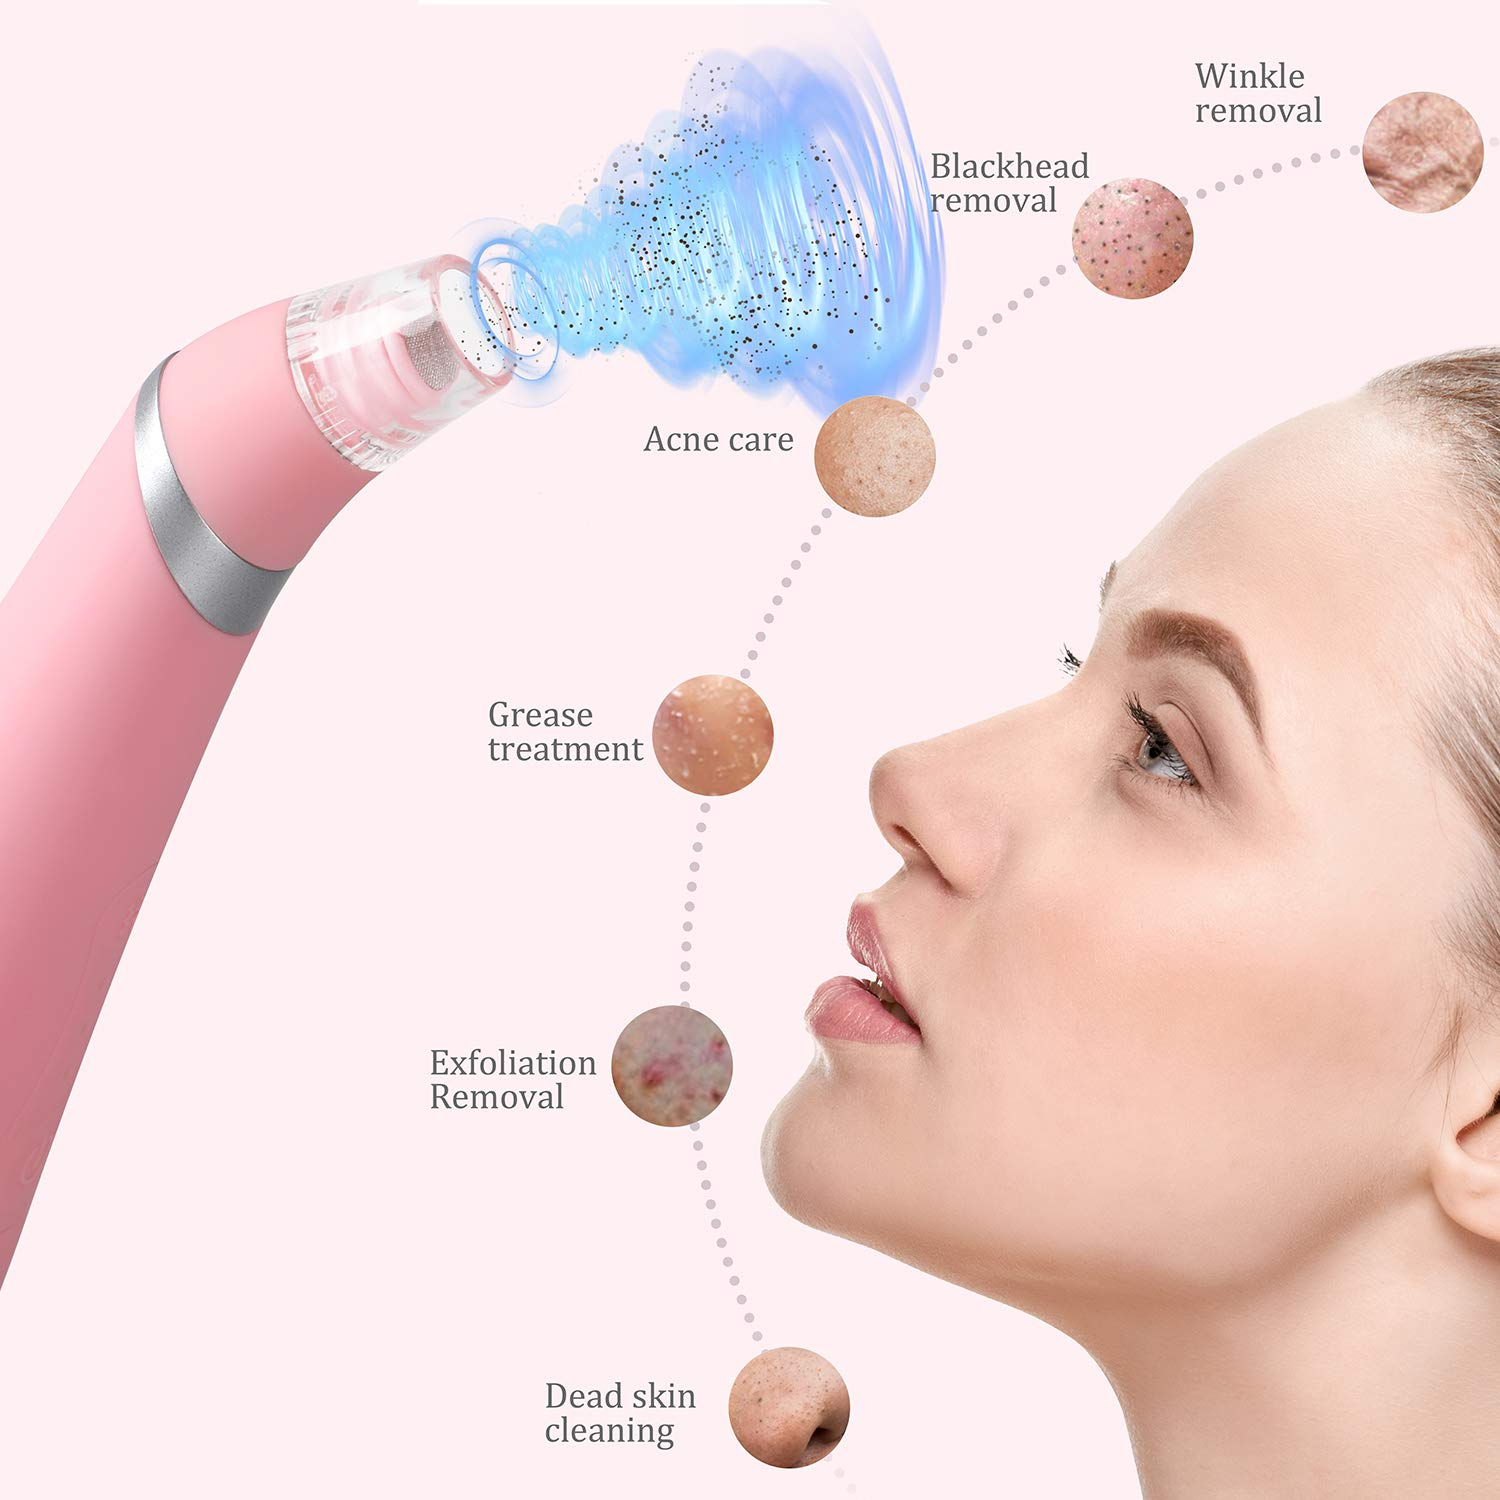 Myladis Rechargeable Electric Blackhead Remover Vacuum - Powerful Facial Pore Vacuum Cleaner Tool for Black Head, Whitehead & Acne Removal with 6 Microdermabrasion & Suction Heads - Upgraded - Pink: Beauty